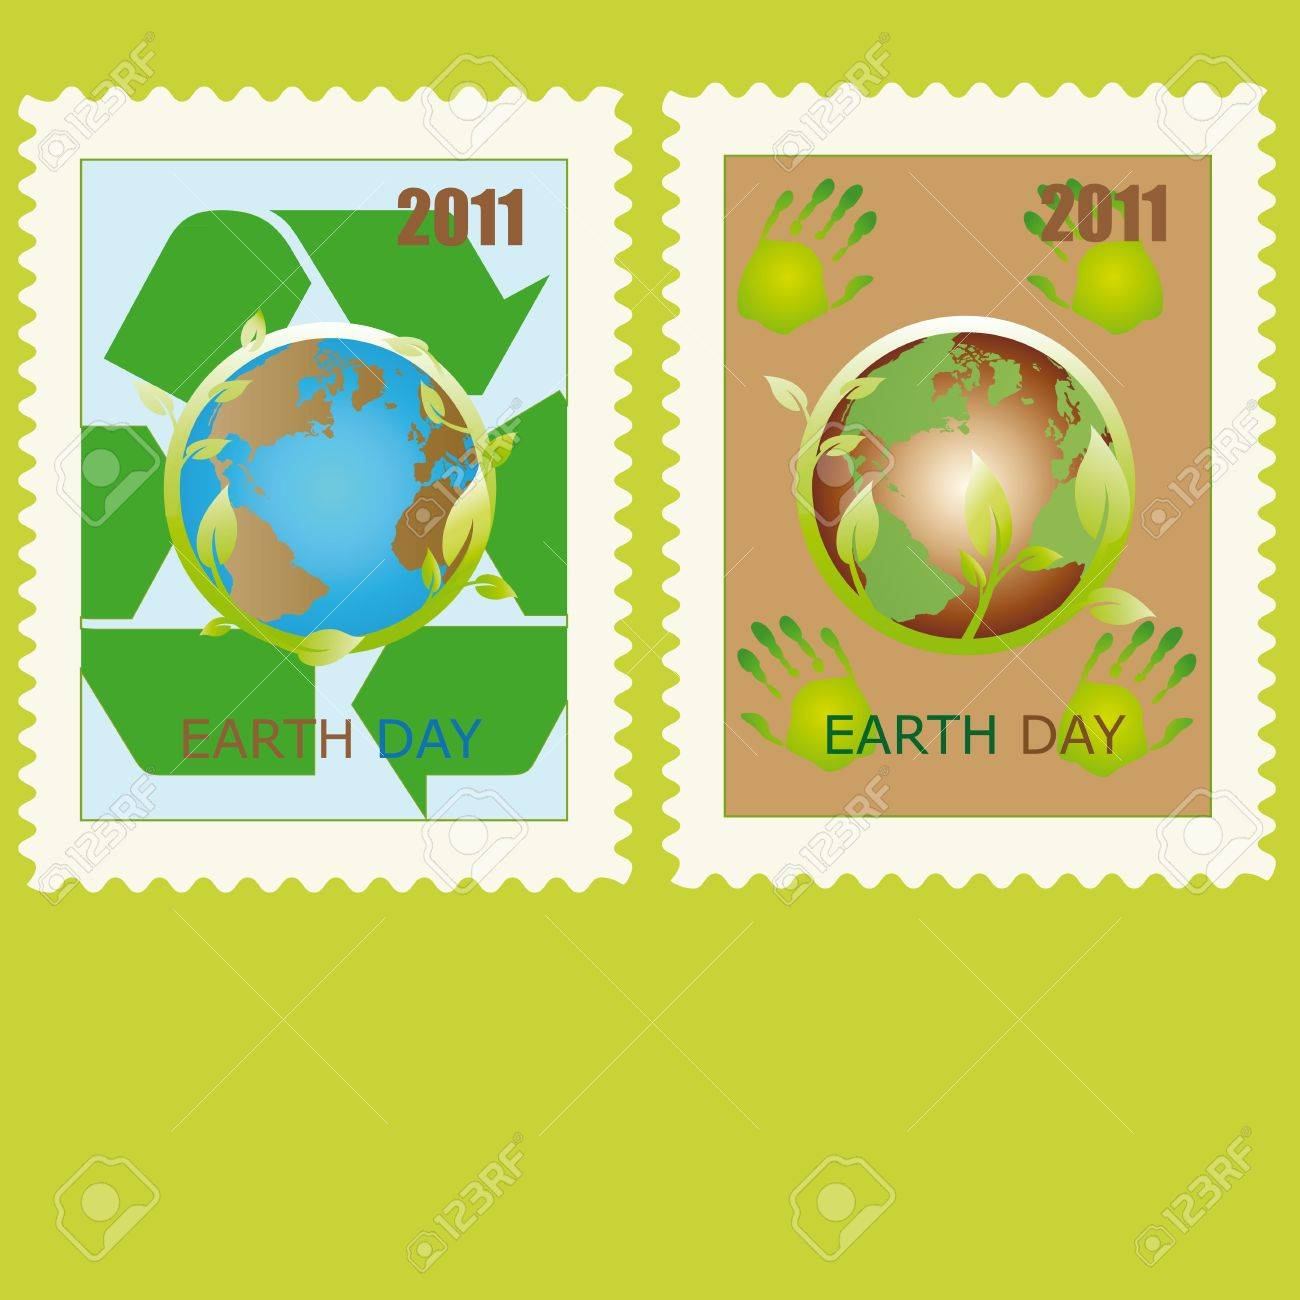 Stamp with planet symbol on earth day royalty free cliparts stamp with planet symbol on earth day stock vector 9394771 buycottarizona